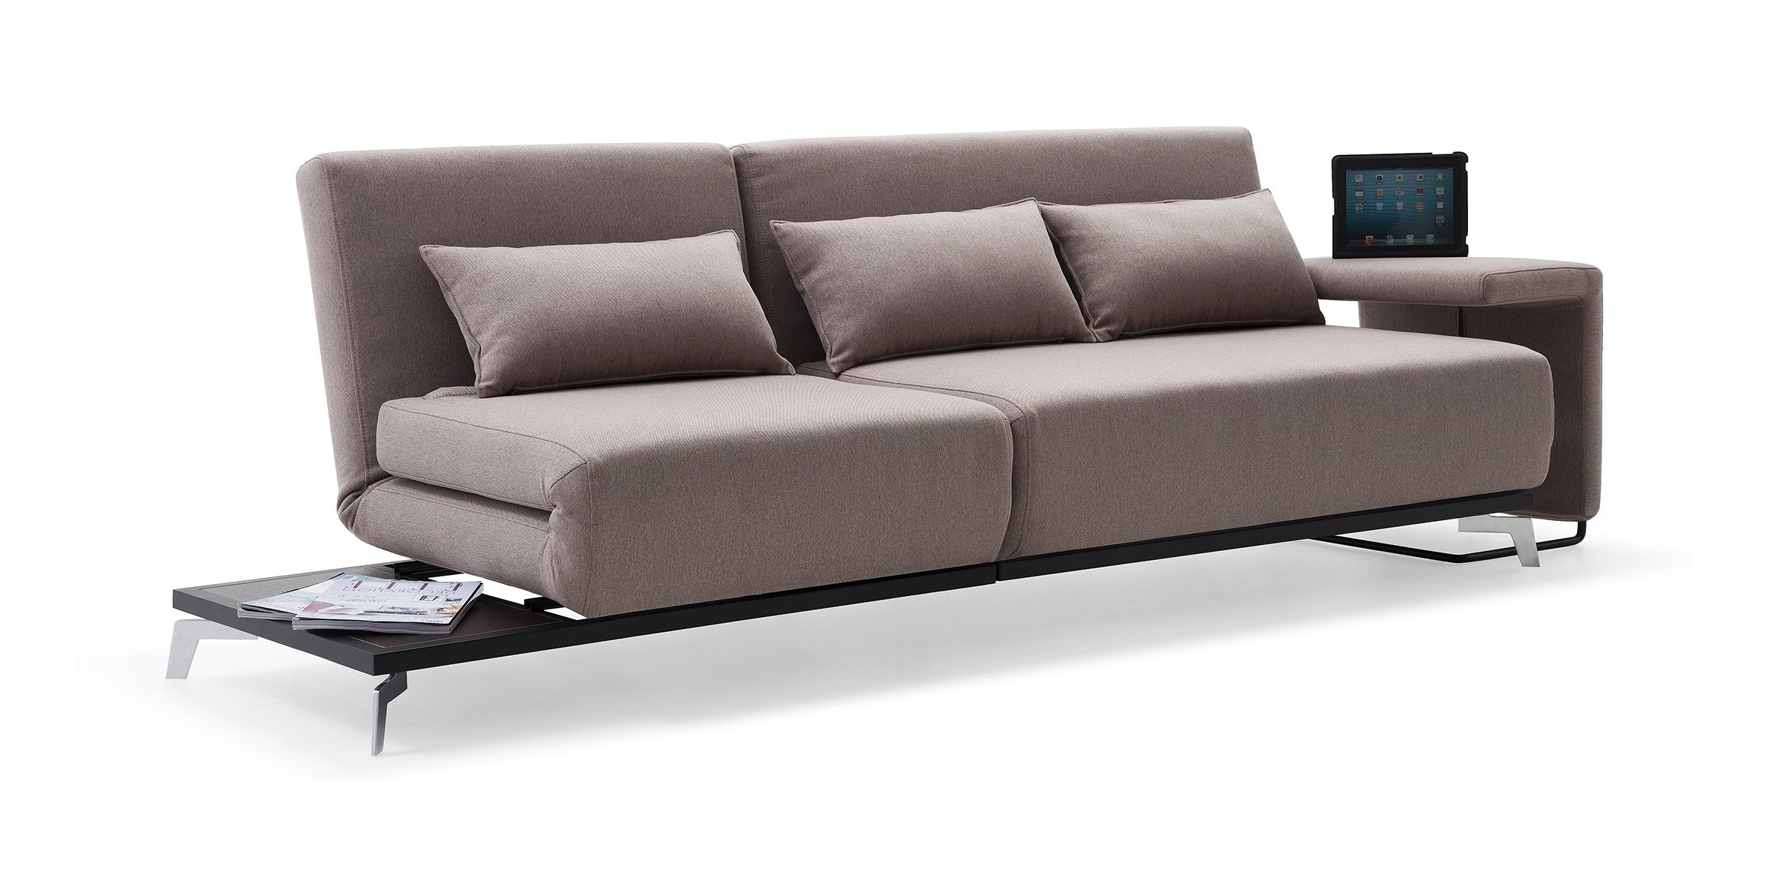 Sofa Chaise Convertible Beds For Trendy Cado Modern Furniture Modern Sofa Bed Jh033 Modern Furniture 1  (View 9 of 15)